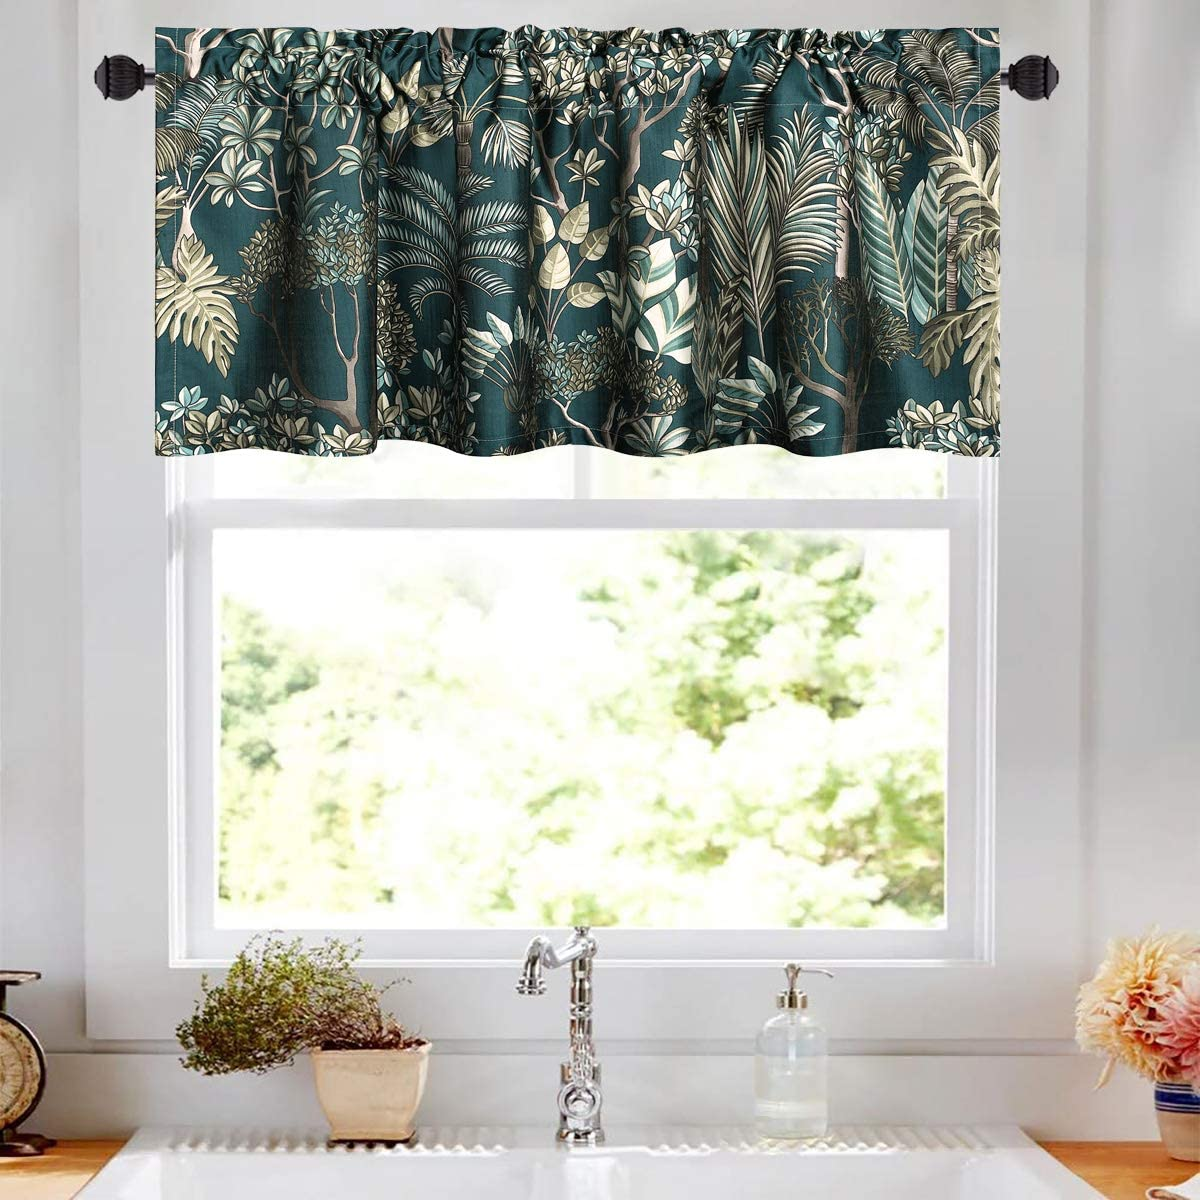 VOGOL Window Curtains Valances Forest Tree Printed Pattern Valance for Kids Room, Modern Top Pocket Small Curtain for Dining Room Door Porch, One Panel, 52×18 Inch, Blue